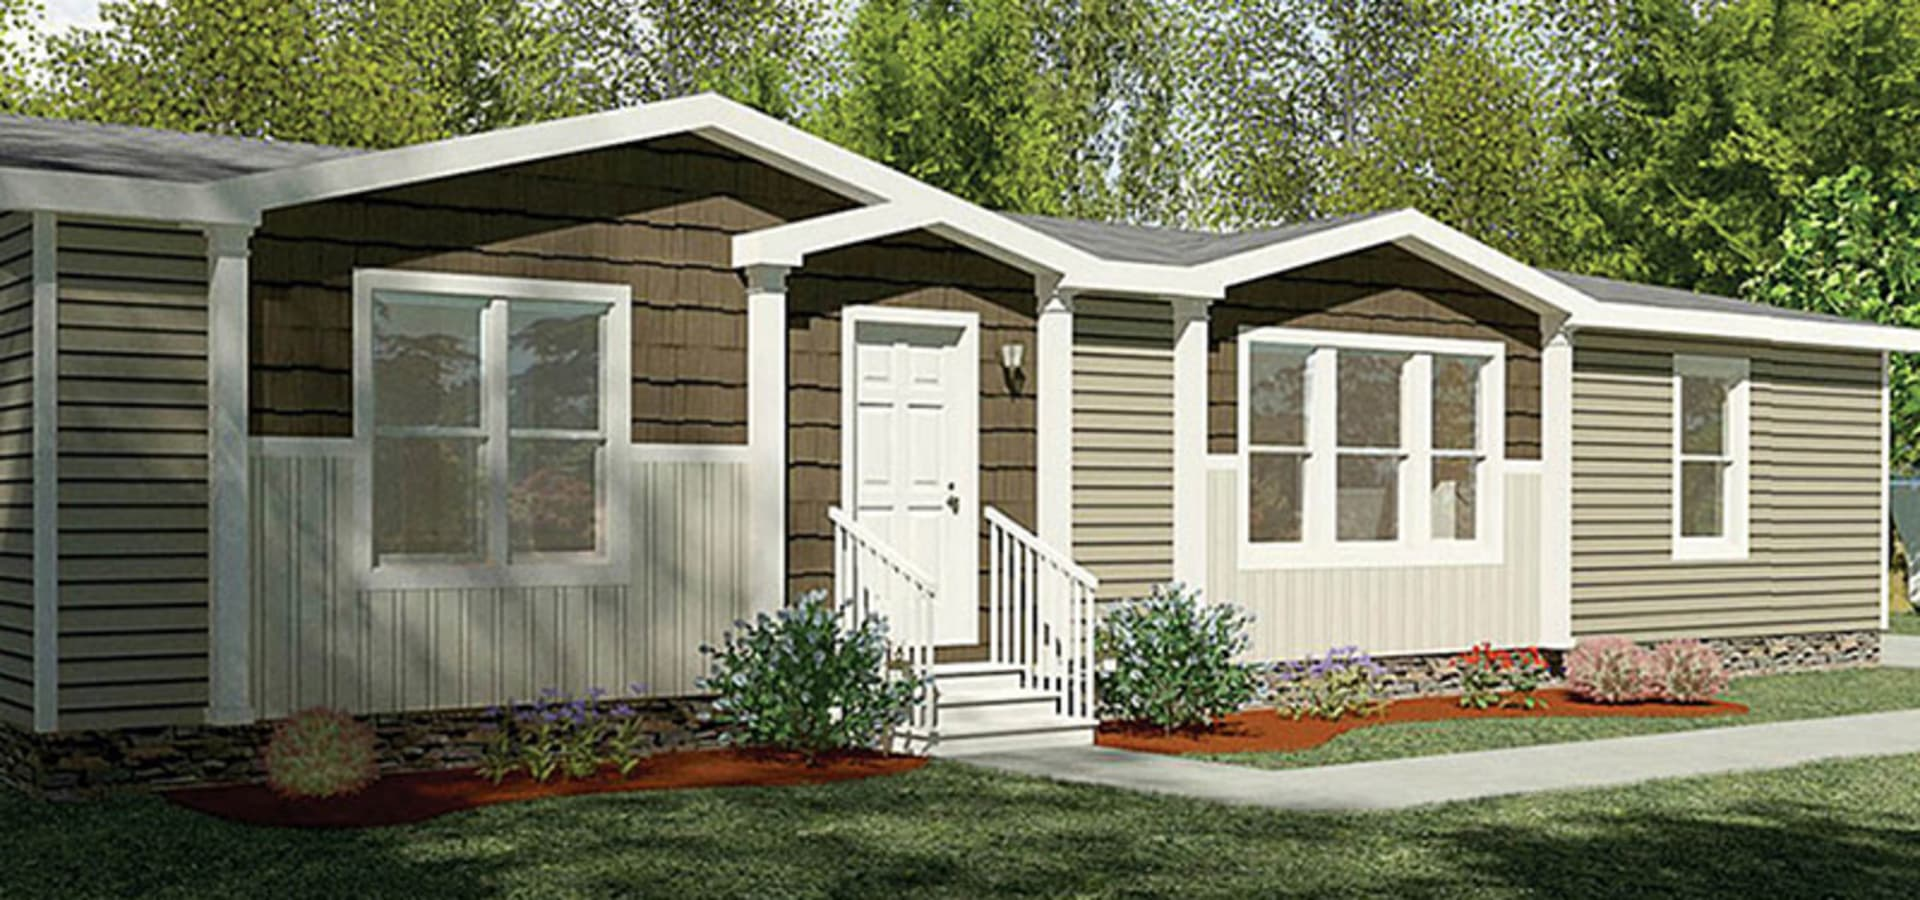 Duke Forest Manufactured Home Community